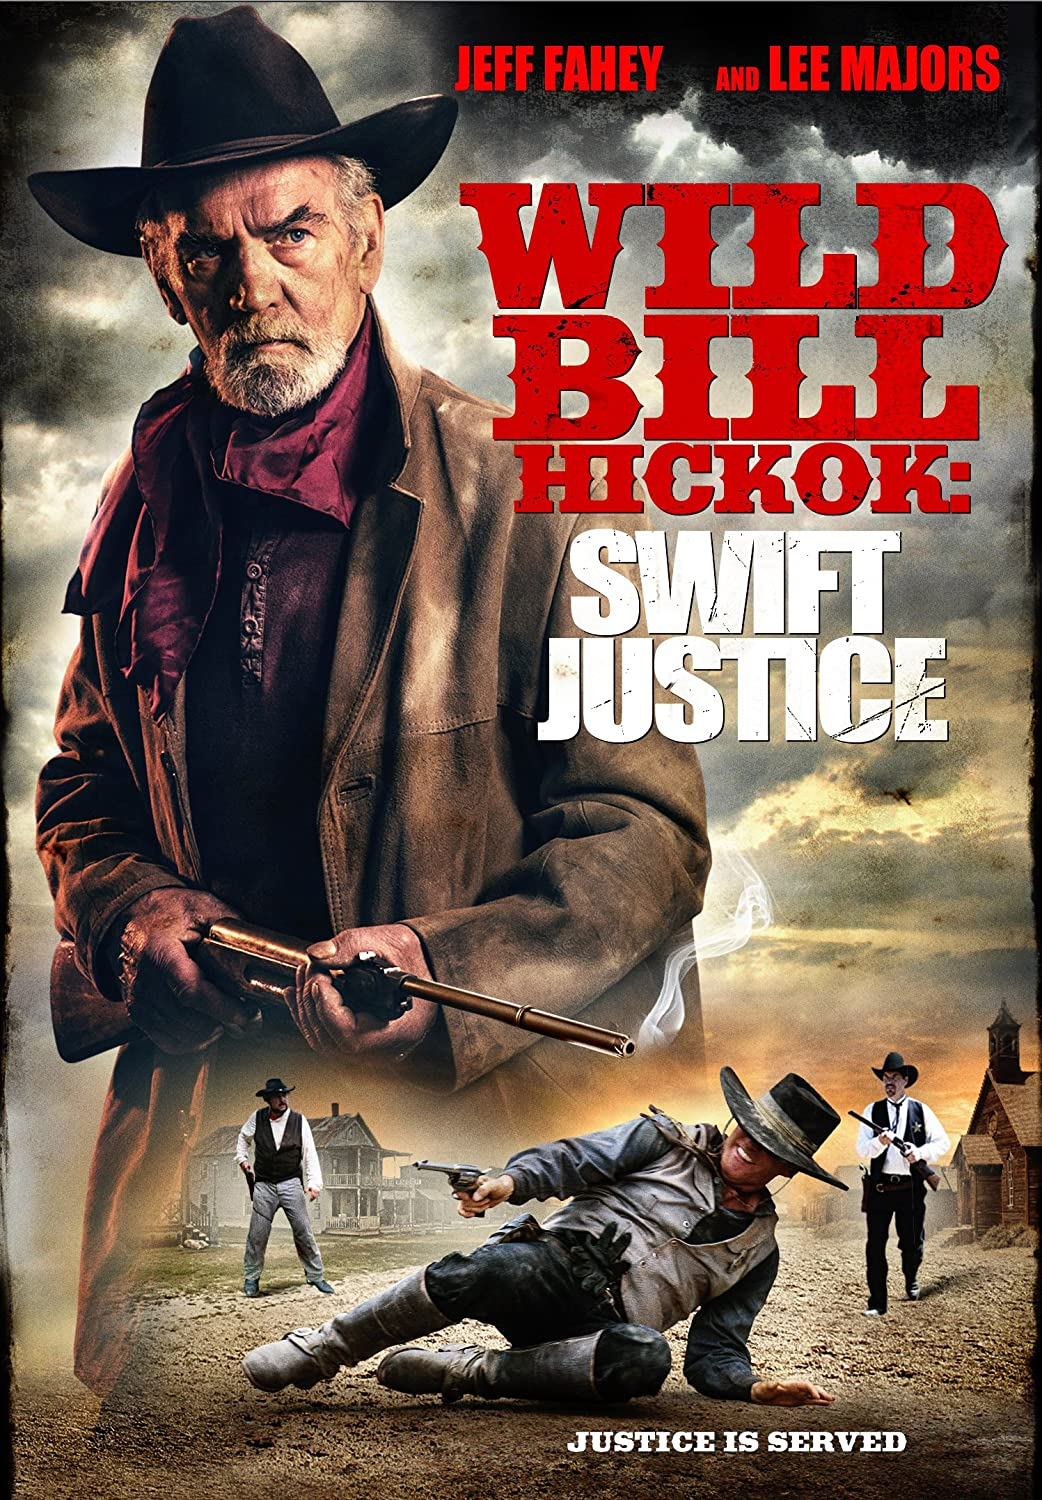 Wild Bill Hickok Swift Justice 2016 HDRip XviD AC3-EVO 1.4 Gb